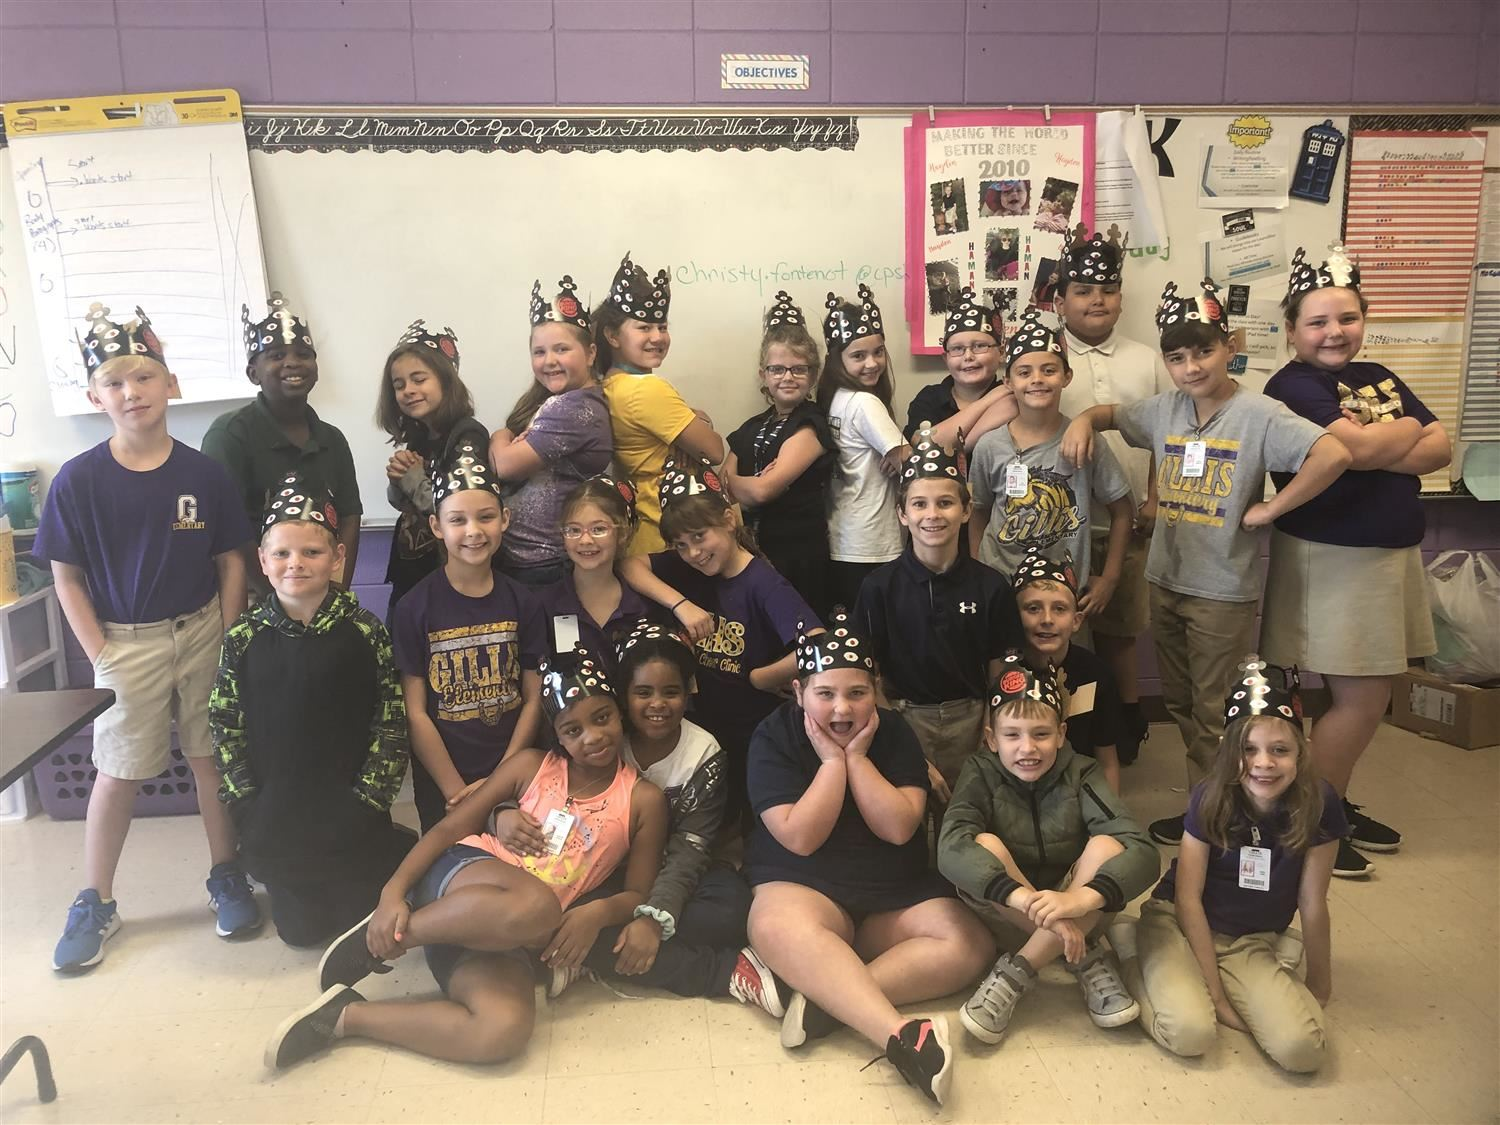 Thanks to Burger King in Moss Bluff for donating crowns for the fourth grade Medieval Feast!